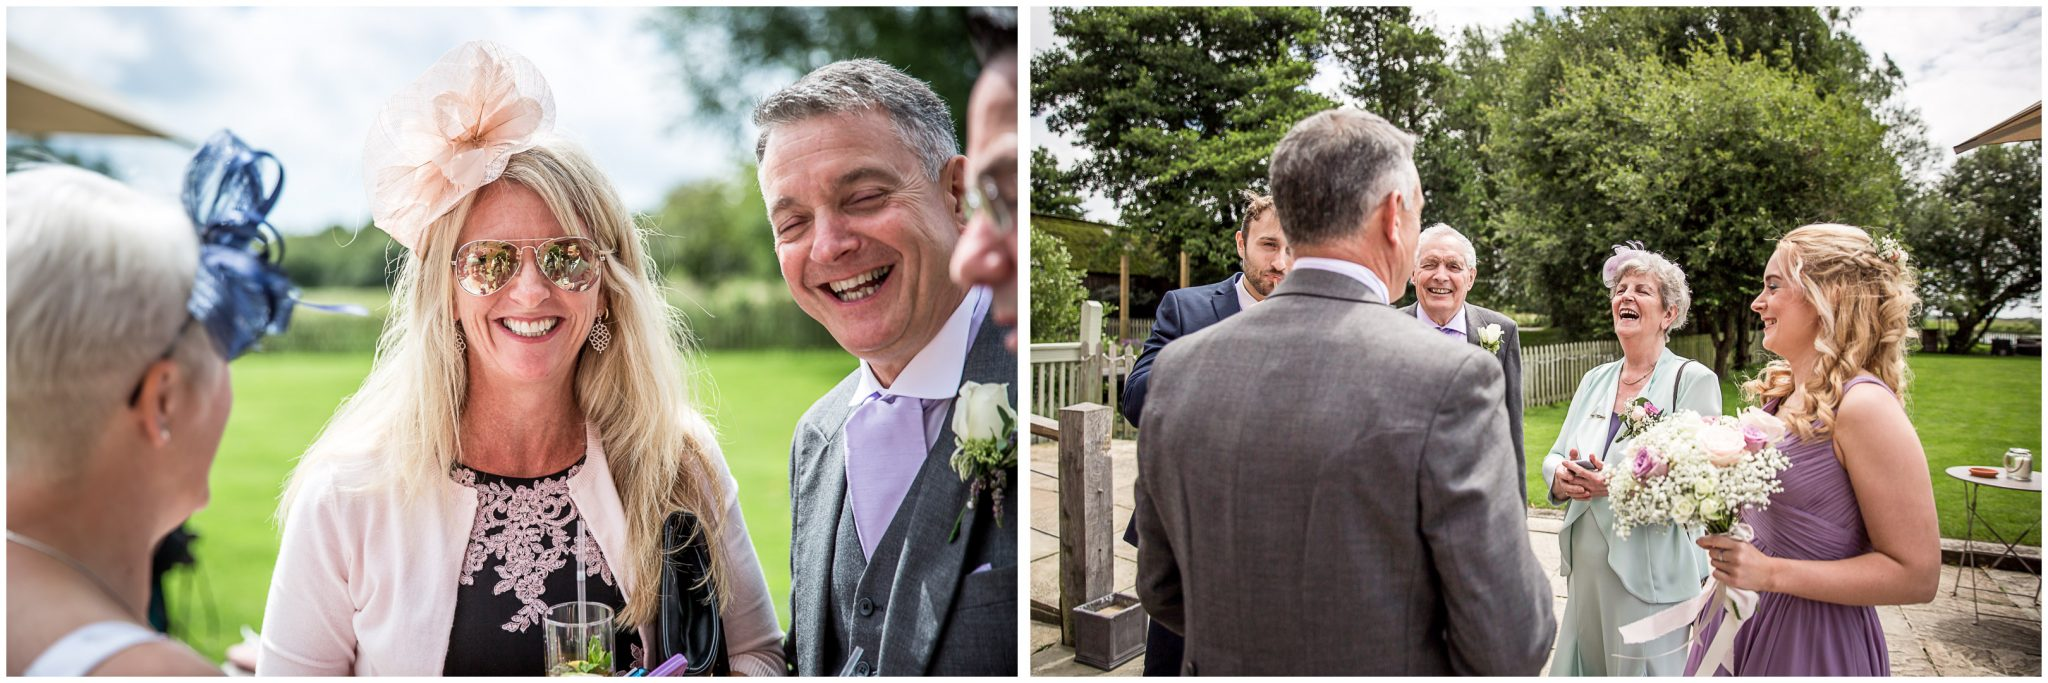 Sopley Mill wedding photography guests in the sunshine